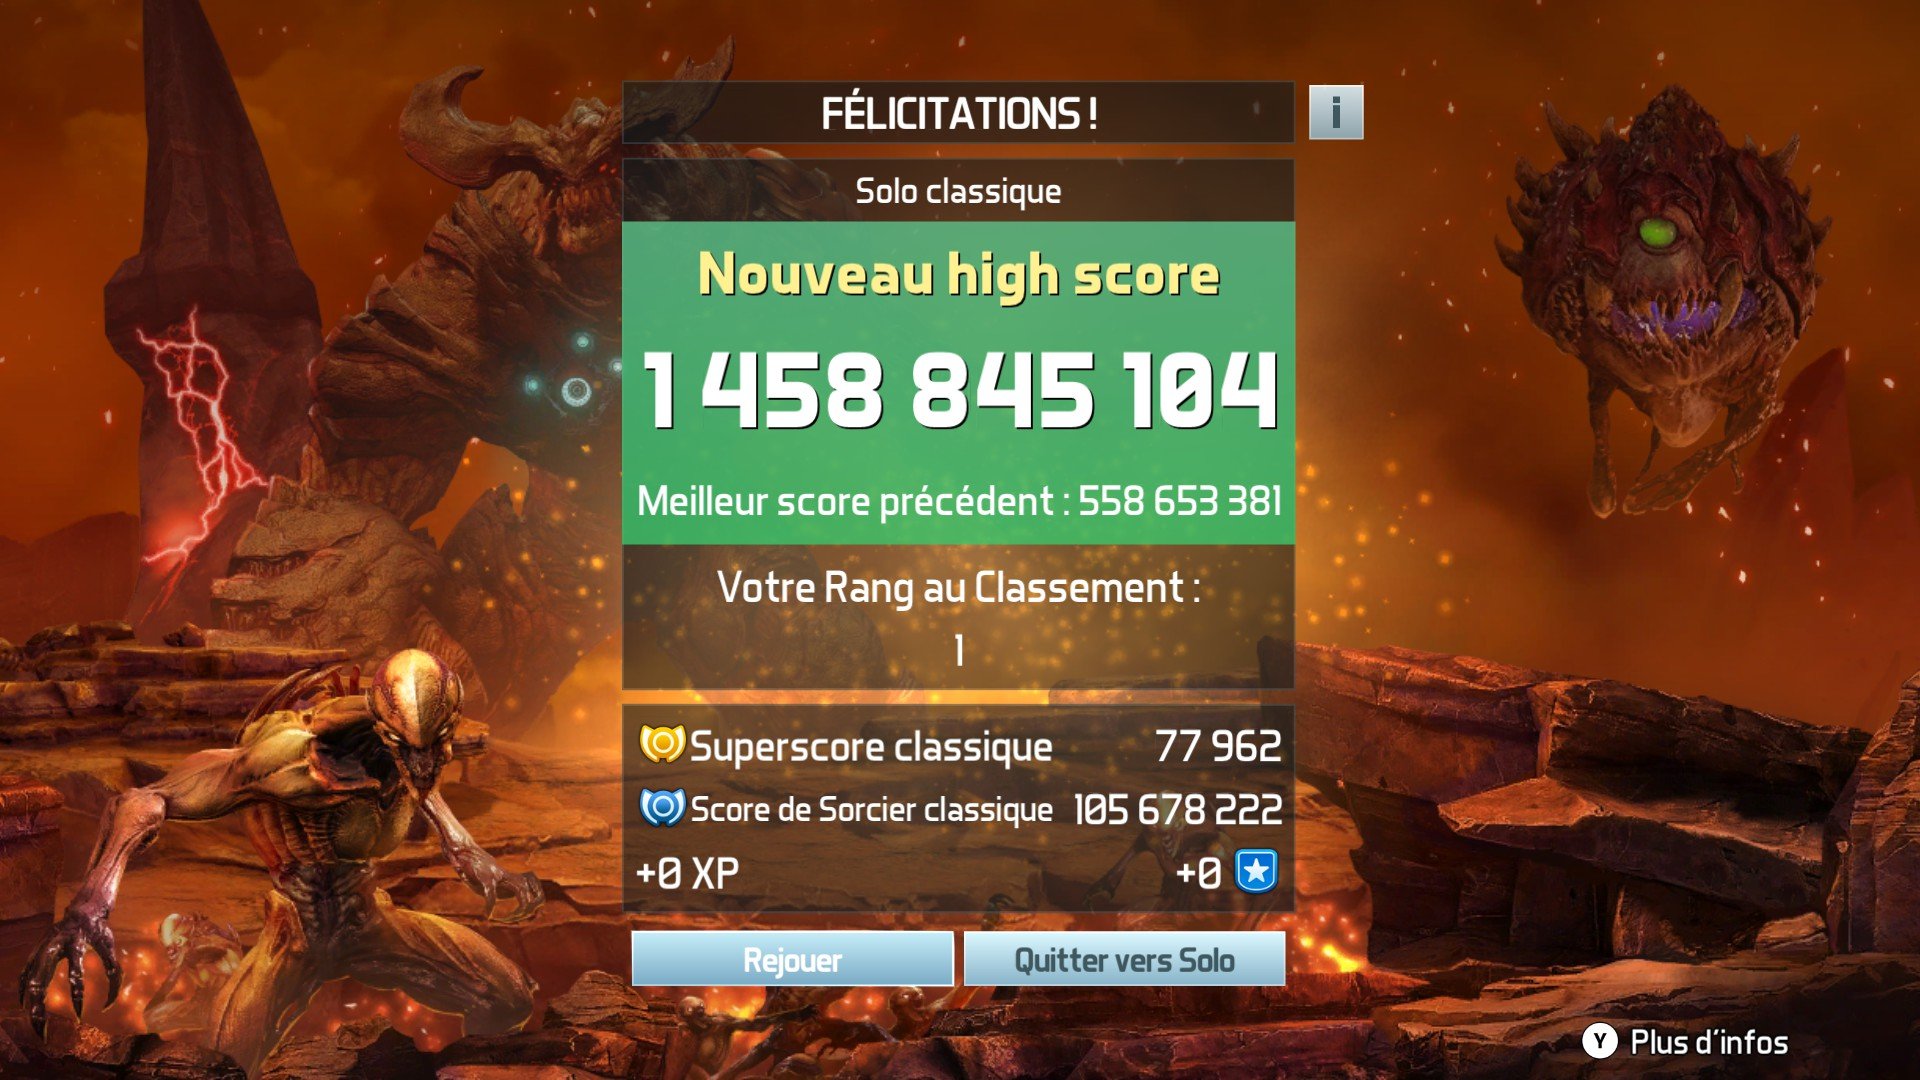 LUP's Club TdM 11.18 : Alerte Invasion • DOOM, The Walking Dead, Earth Defense 20181110